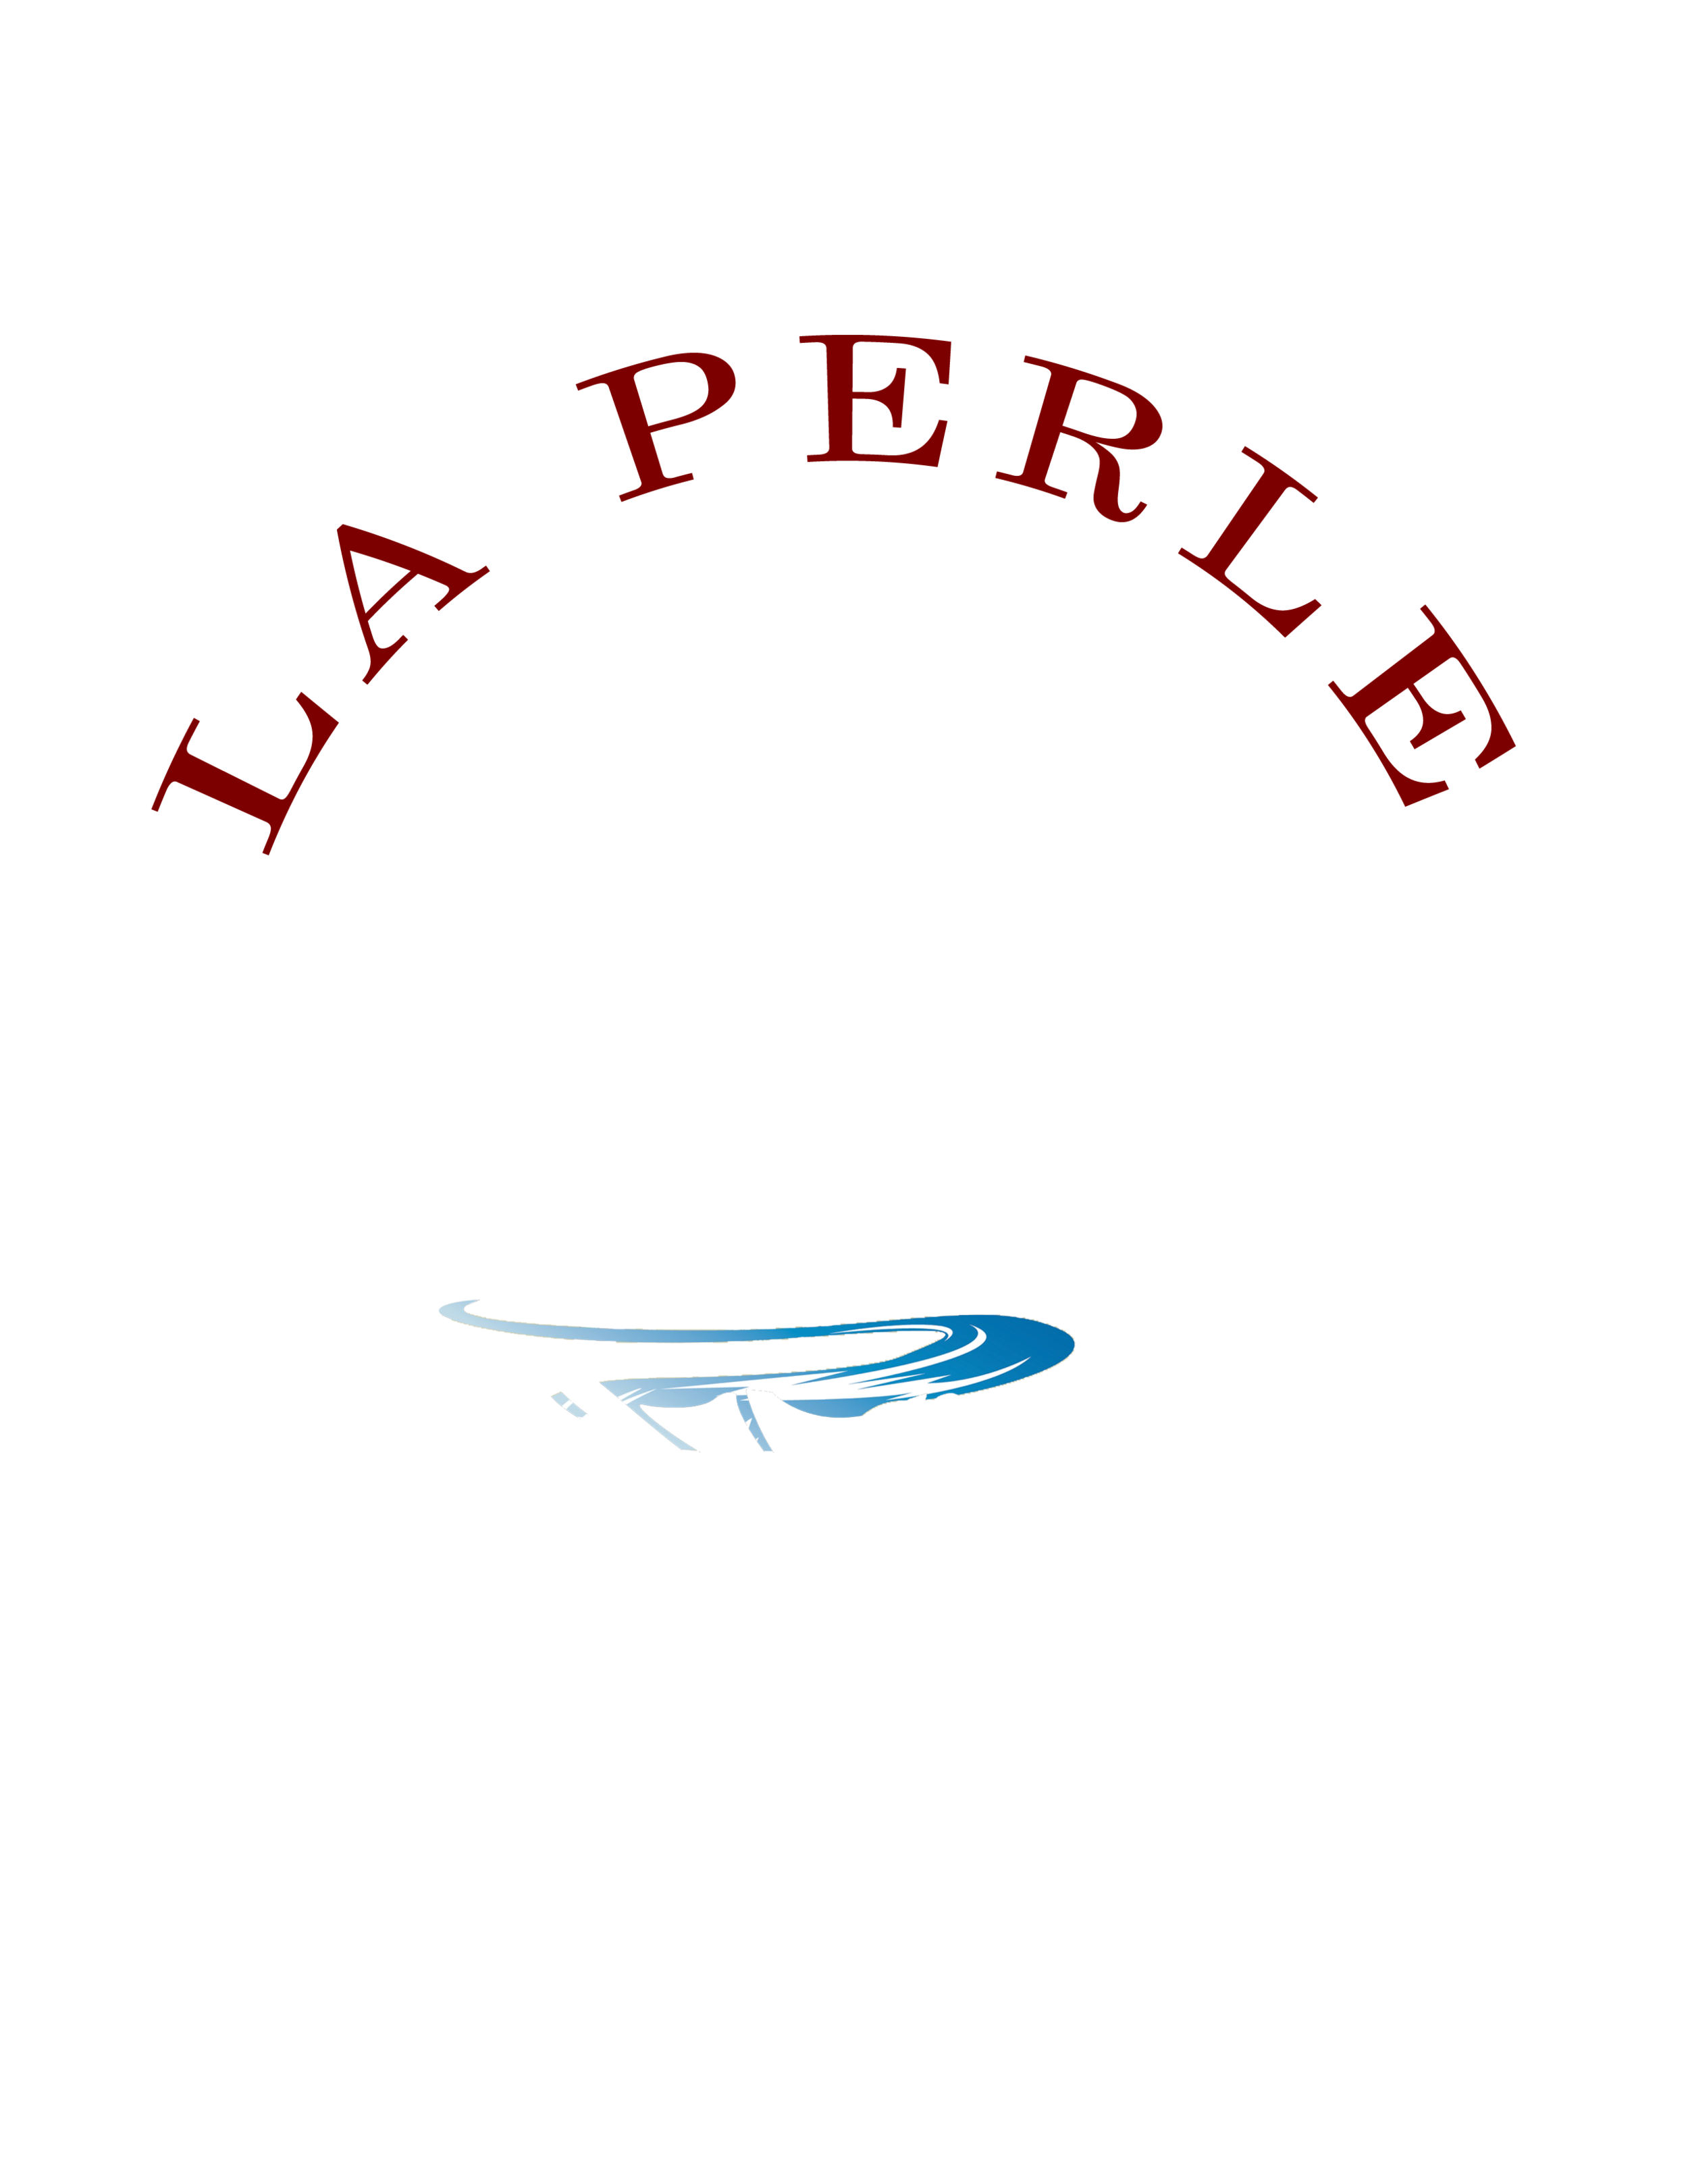 La Perle Restaurant & Bar